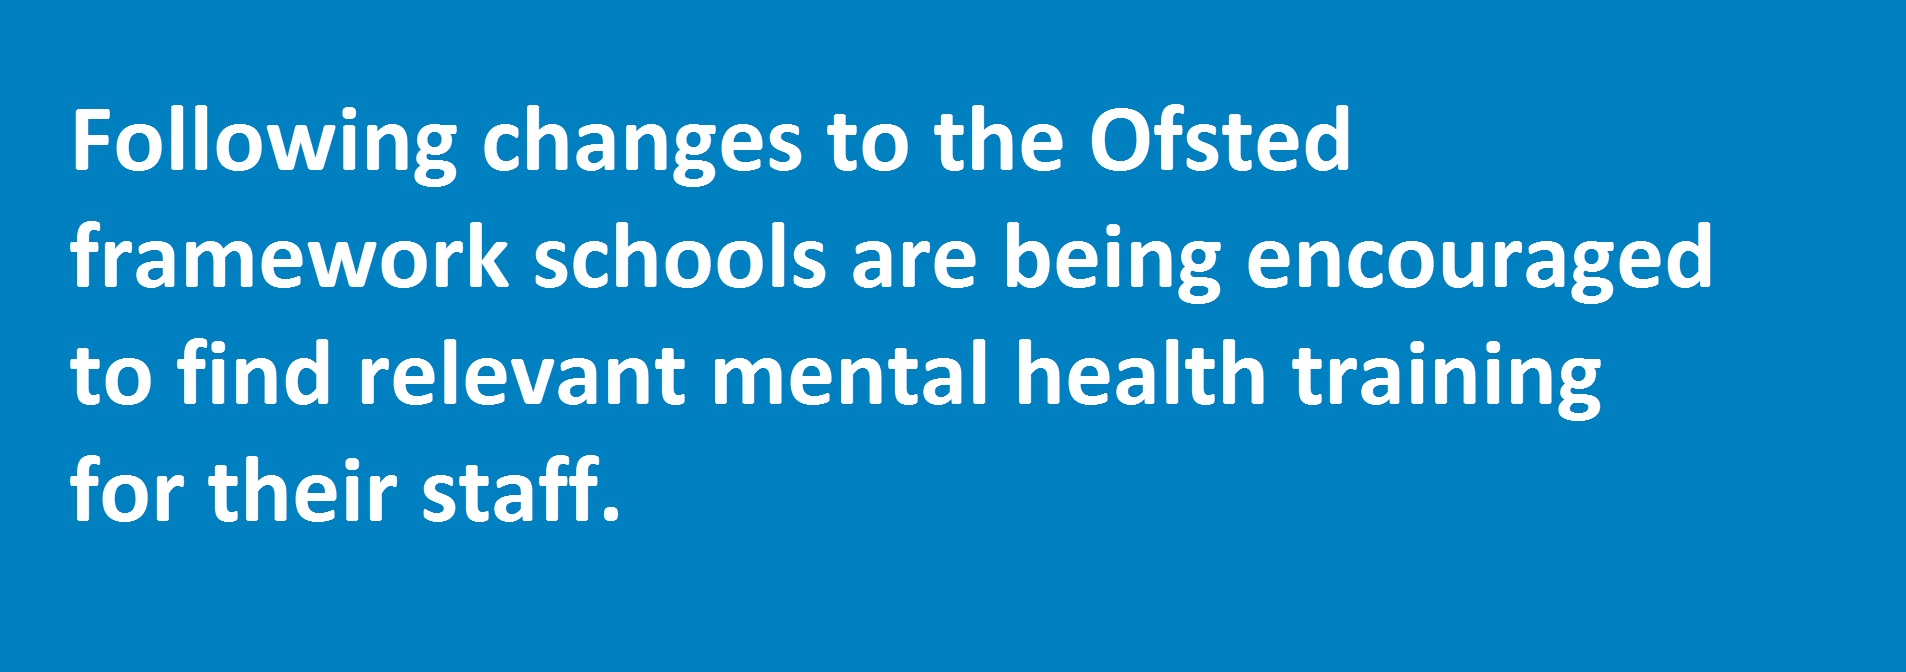 Following changes in the Ofsted framework schools are being encouraged to find mental health training relevant to their staff